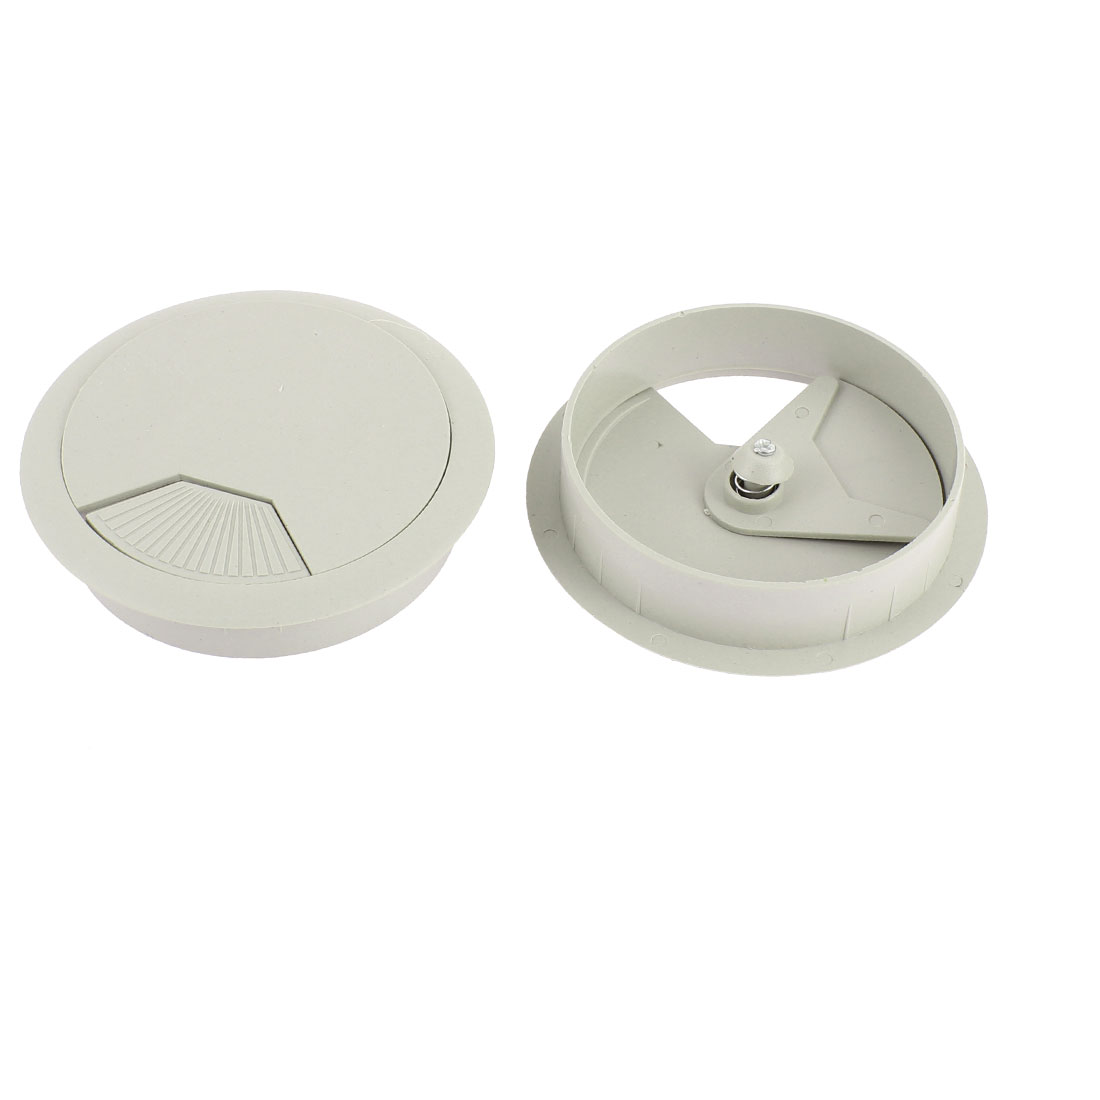 Plastic 80mm Round Computer Desk Wire Cable Hole Cover Grommet 2Pcs